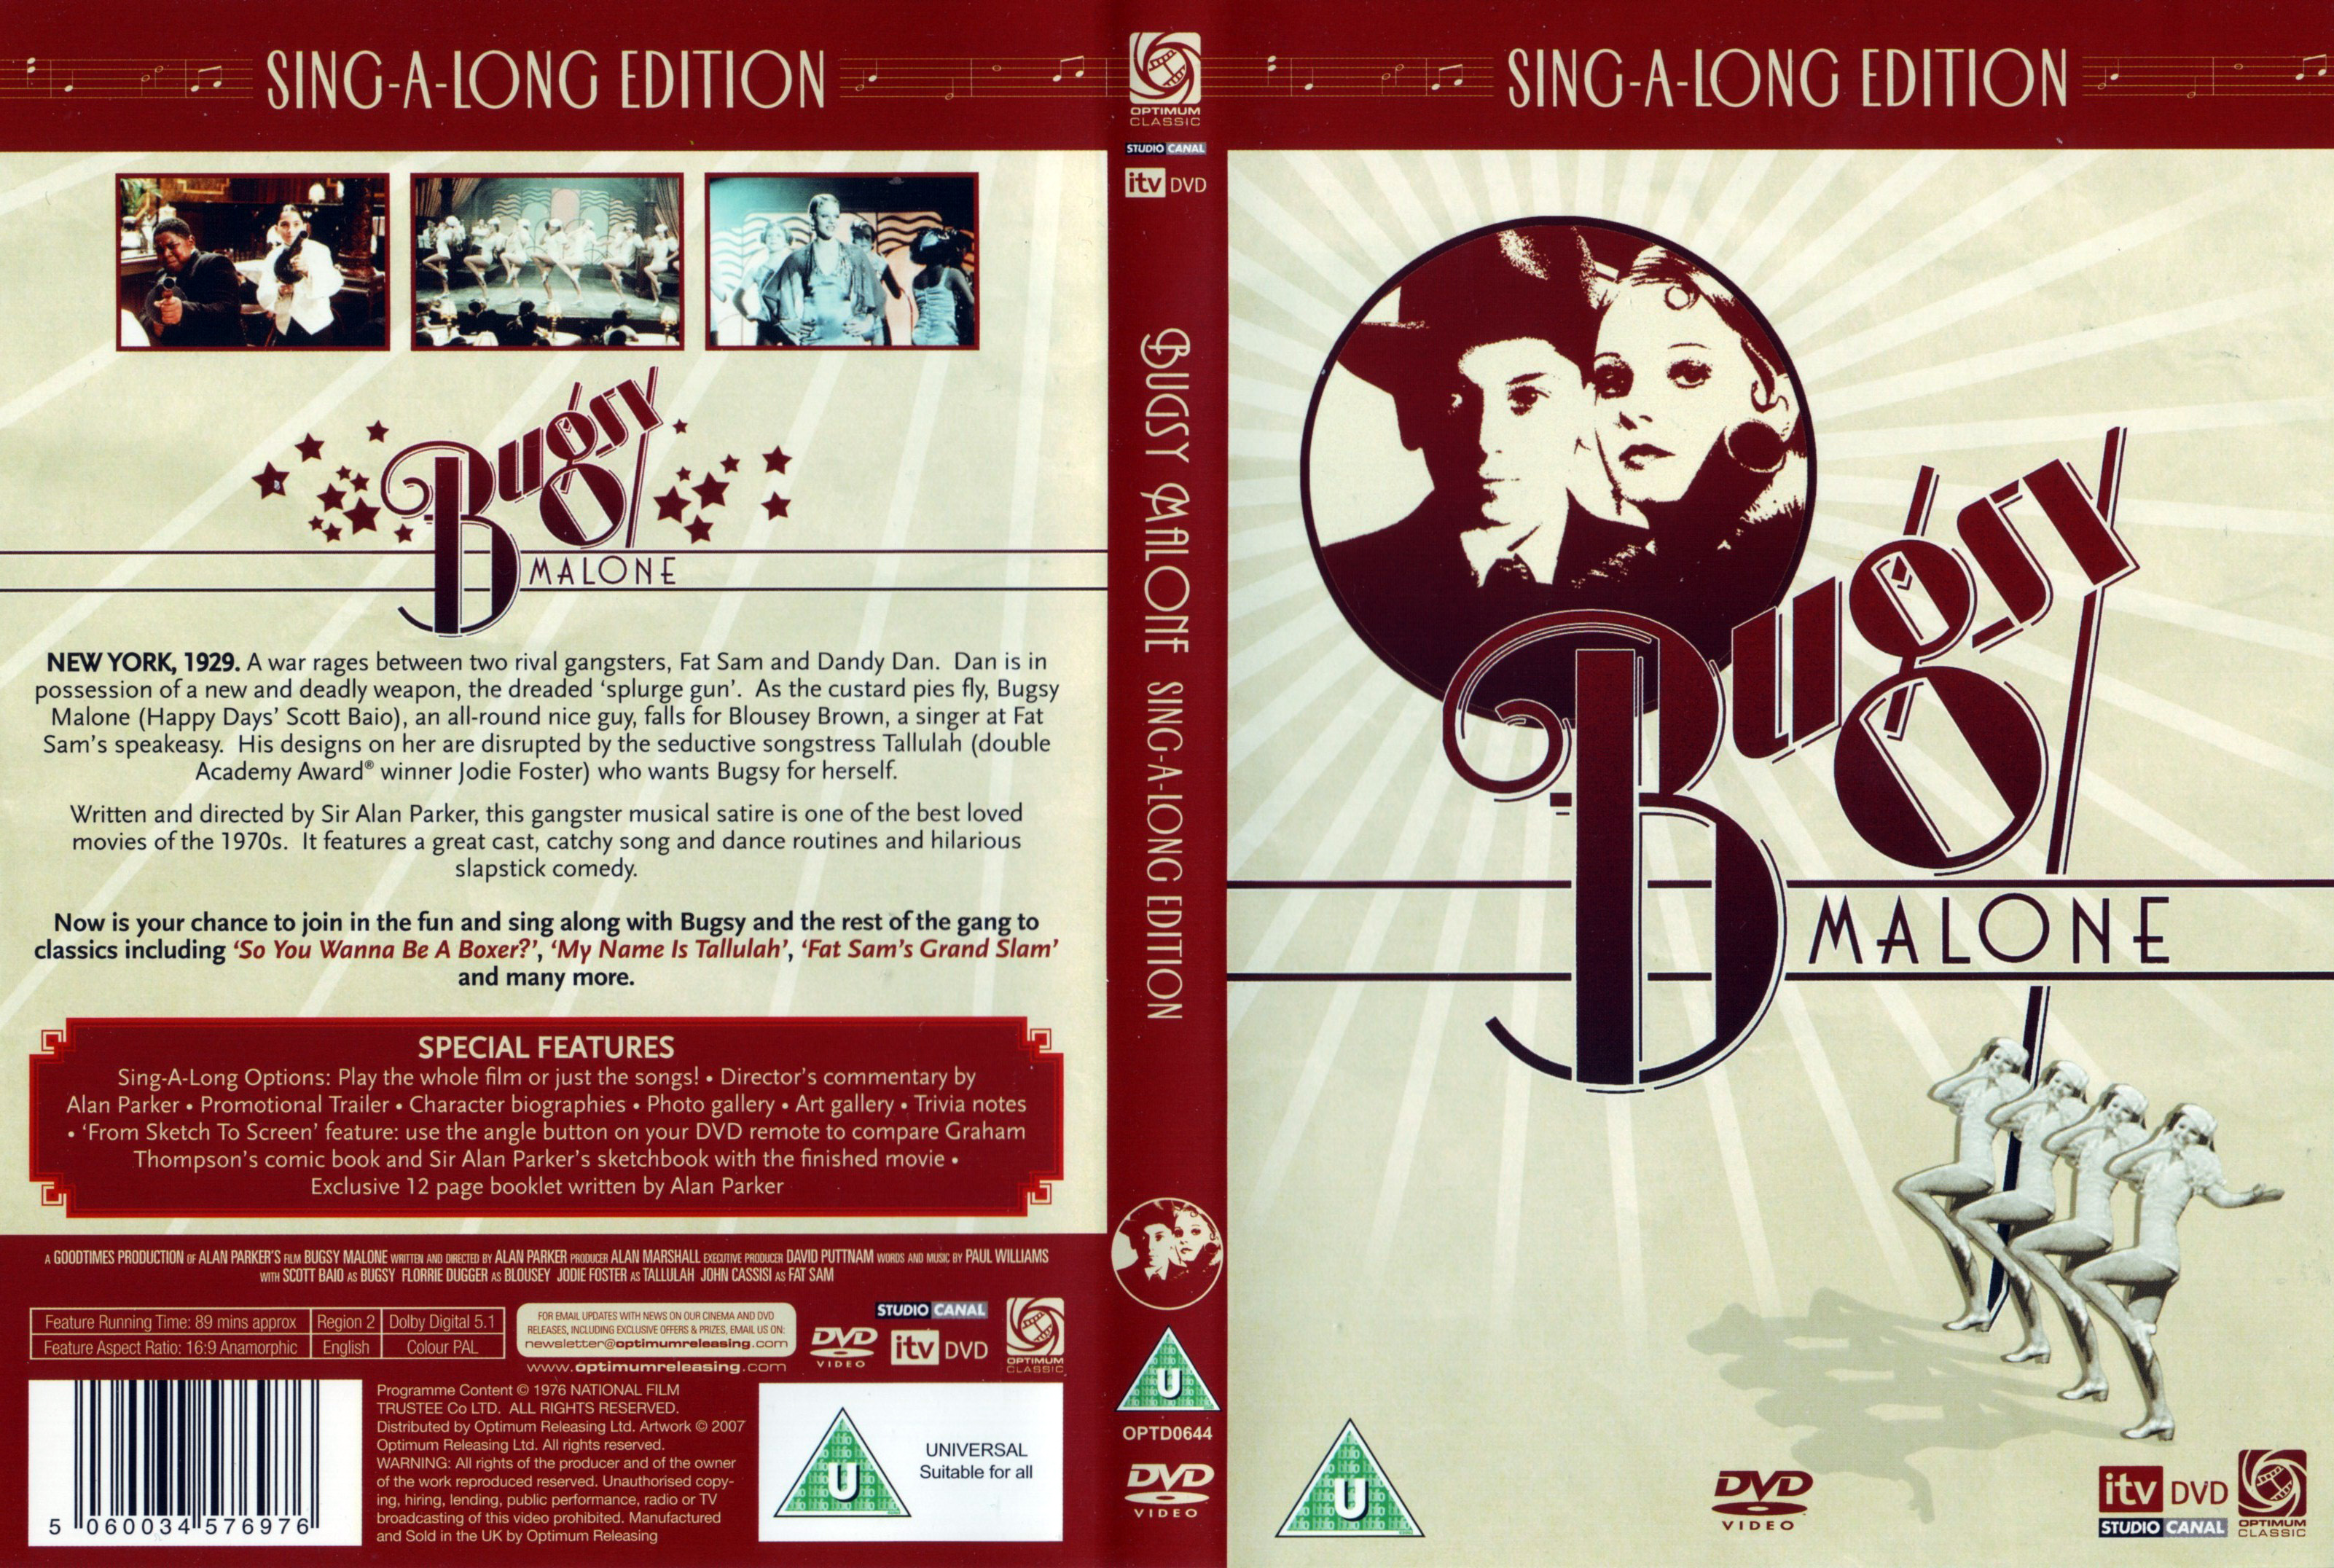 Bugsy Malone Dvd Image Mag : max1375574828 front cover from imagemag.ru size 3203 x 2152 jpeg 2305kB